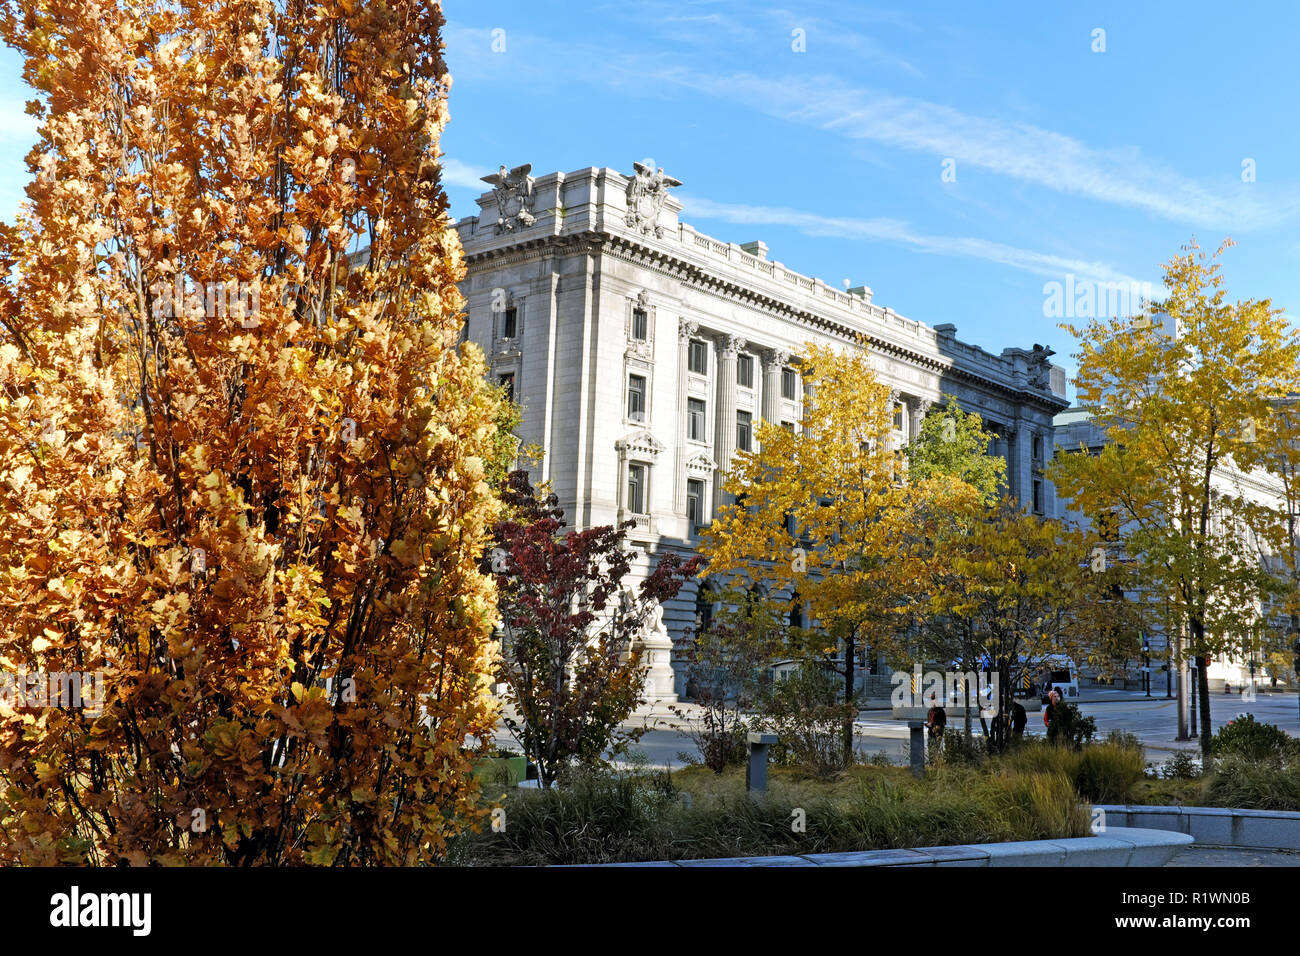 Viewed through the downtown Cleveland Public Square fall foliage, the southwest corner of the historic Metzenbaum U.S. Courthouse is viewed. - Stock Image